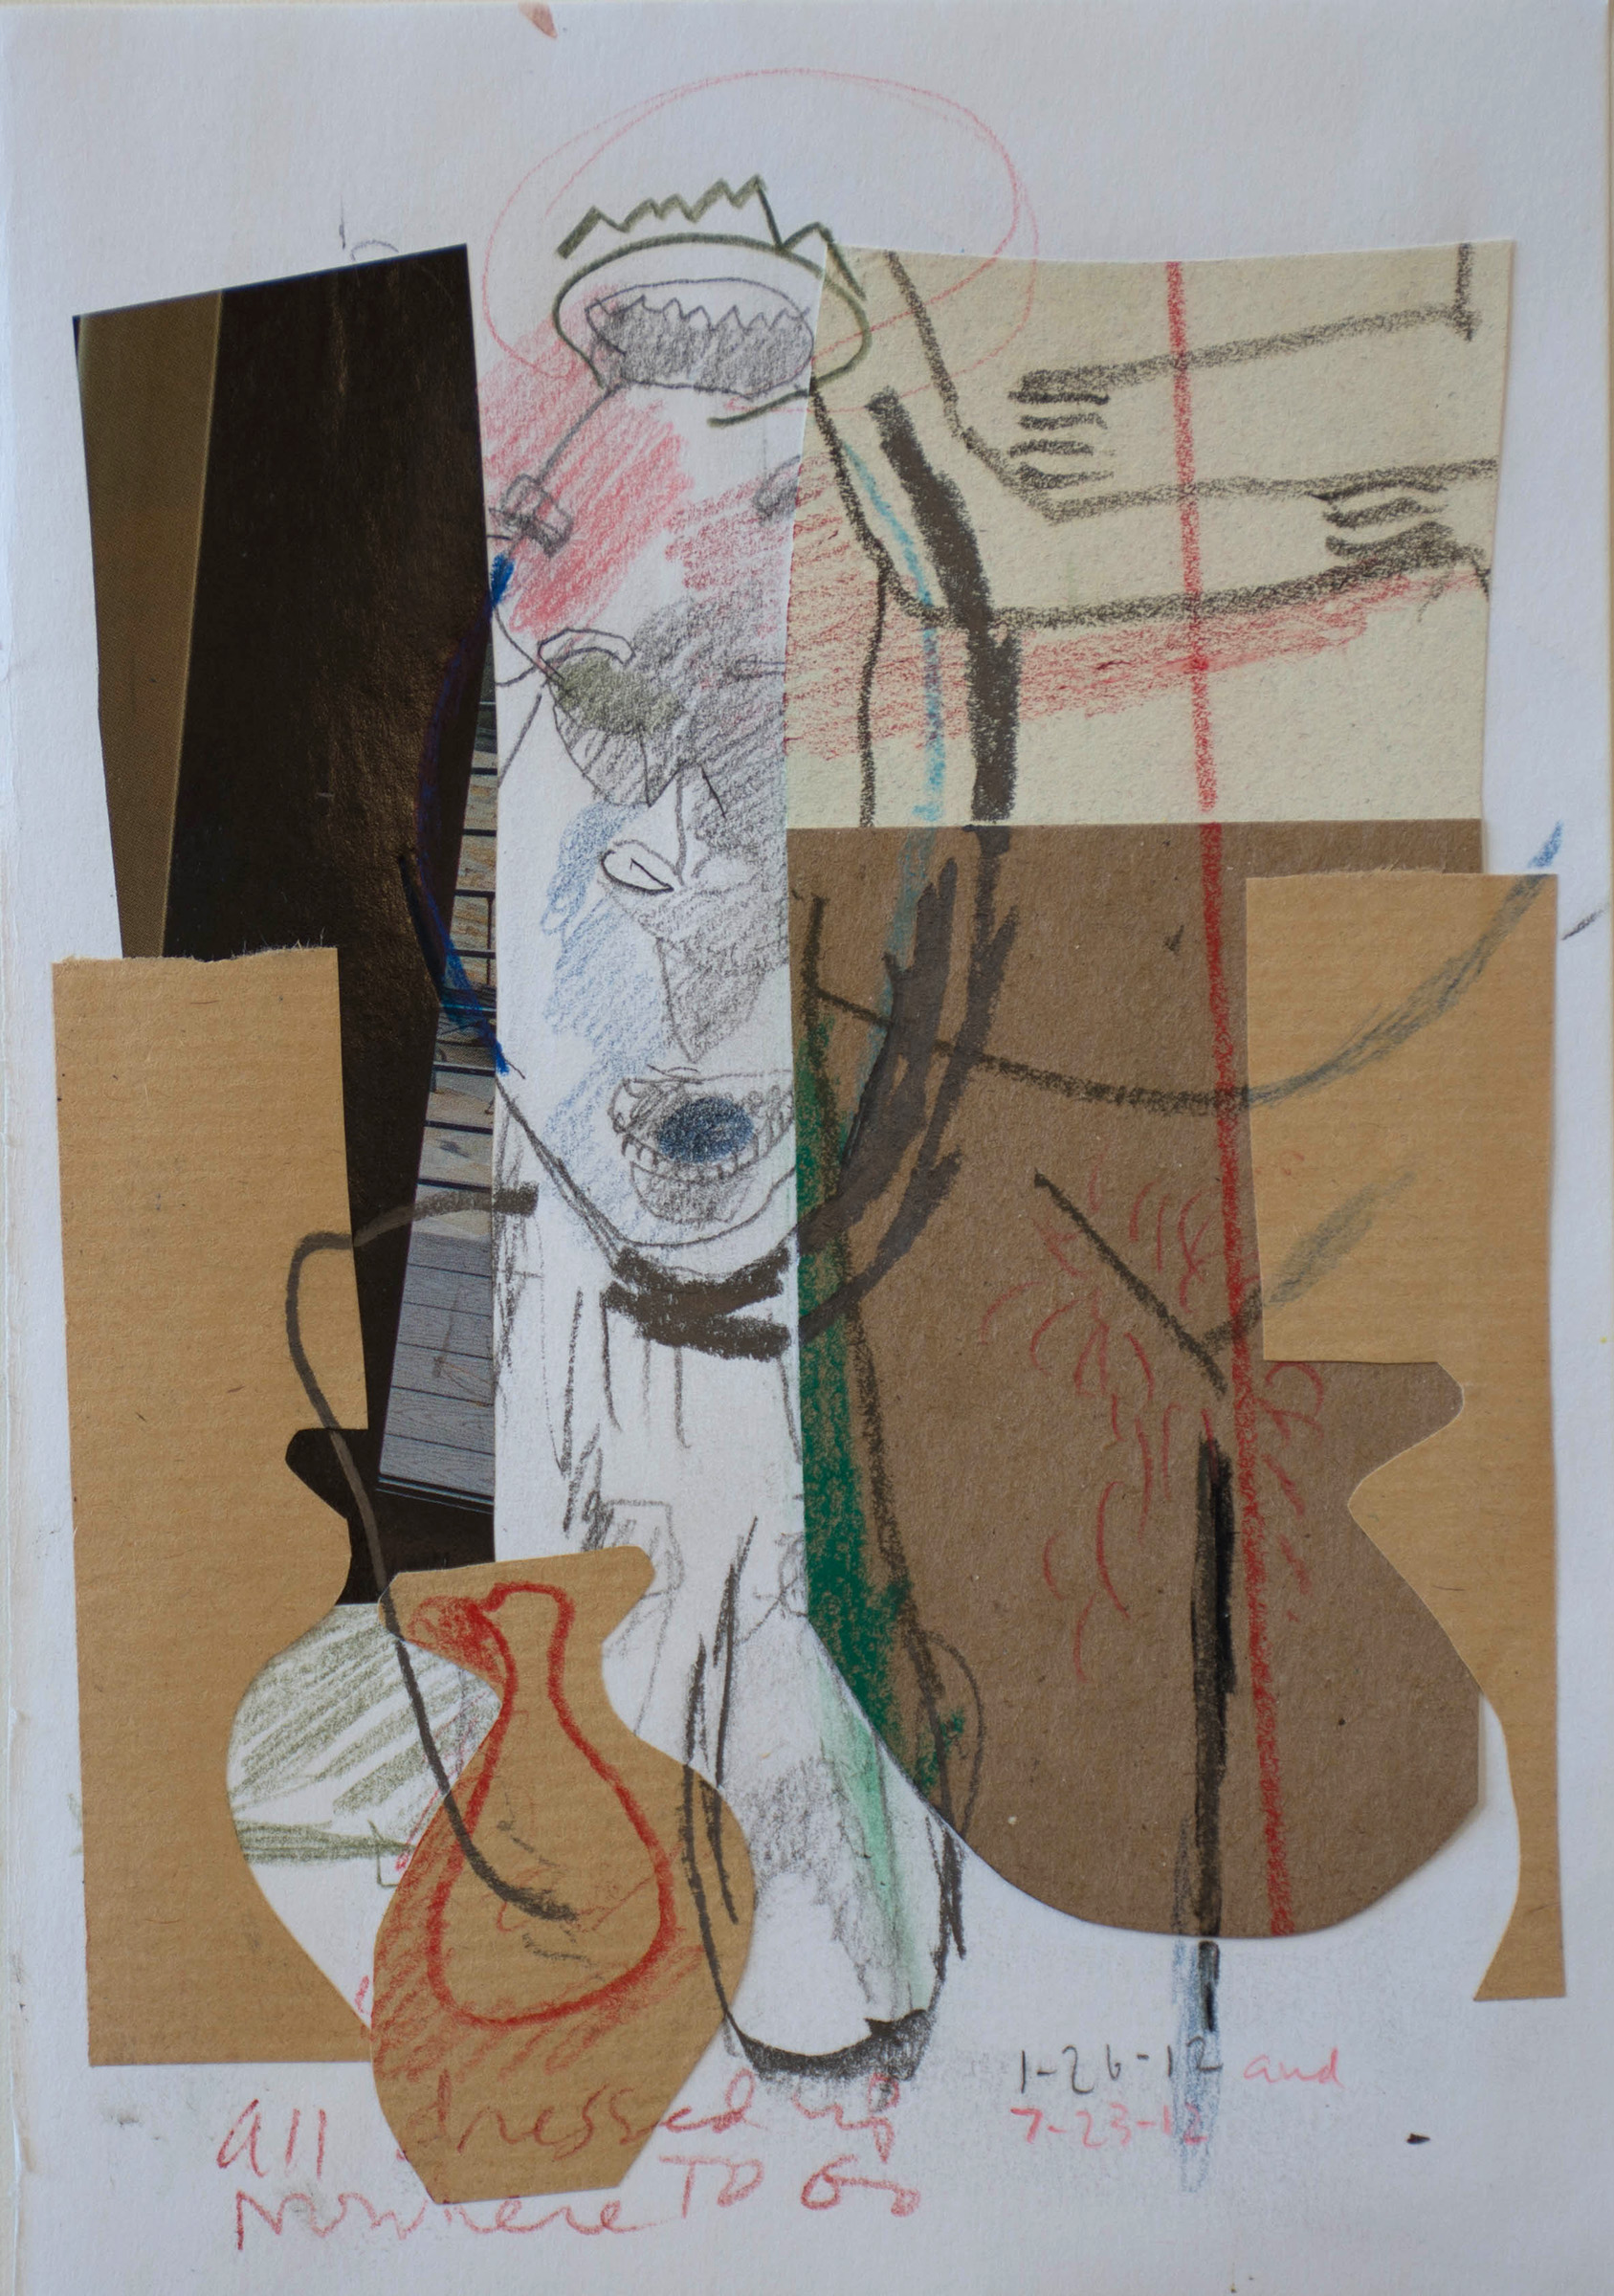 SITE-1-26-16 and 7-23-16 collage-lighter.Lbox (1 of 1).jpg